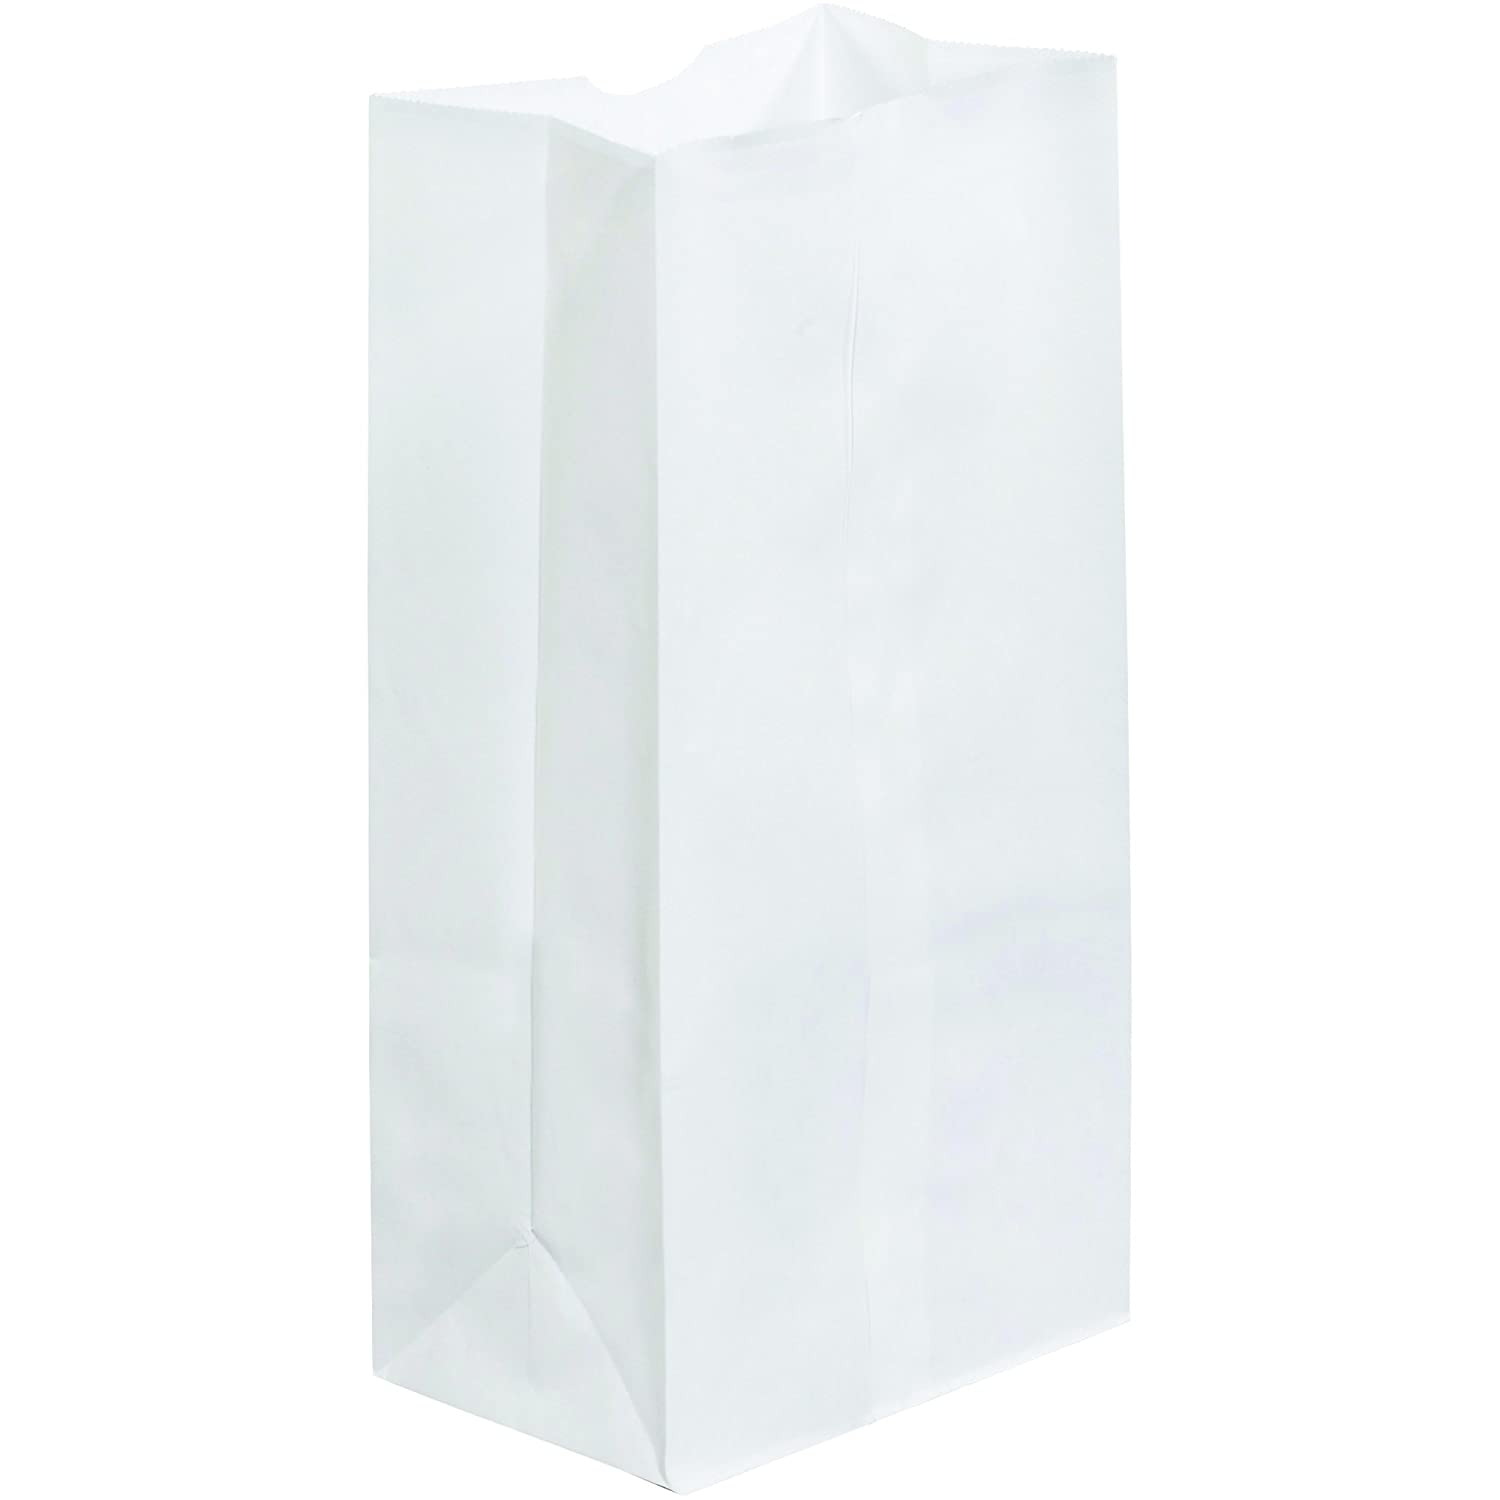 Ship Now Supply SNBGG122W Grocery Bags 7 3 2